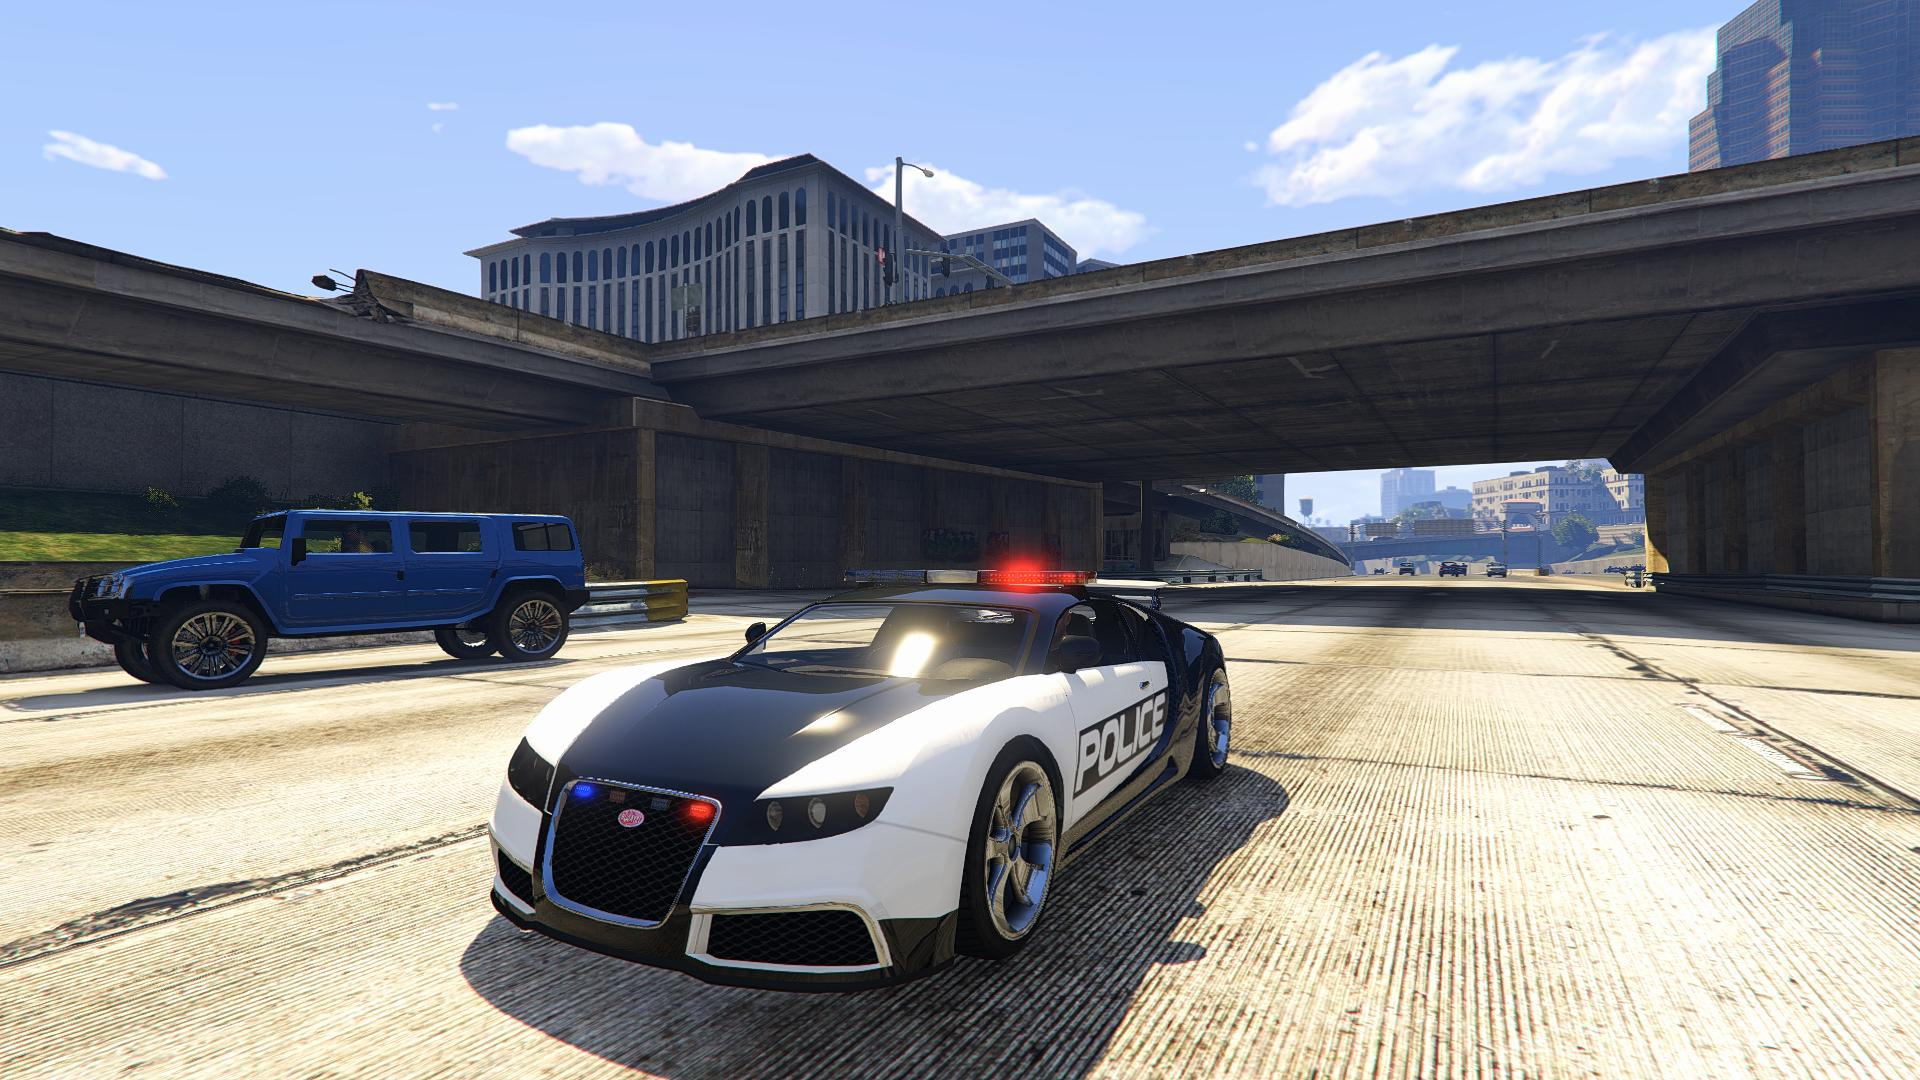 gta v how to add extra texture on cars